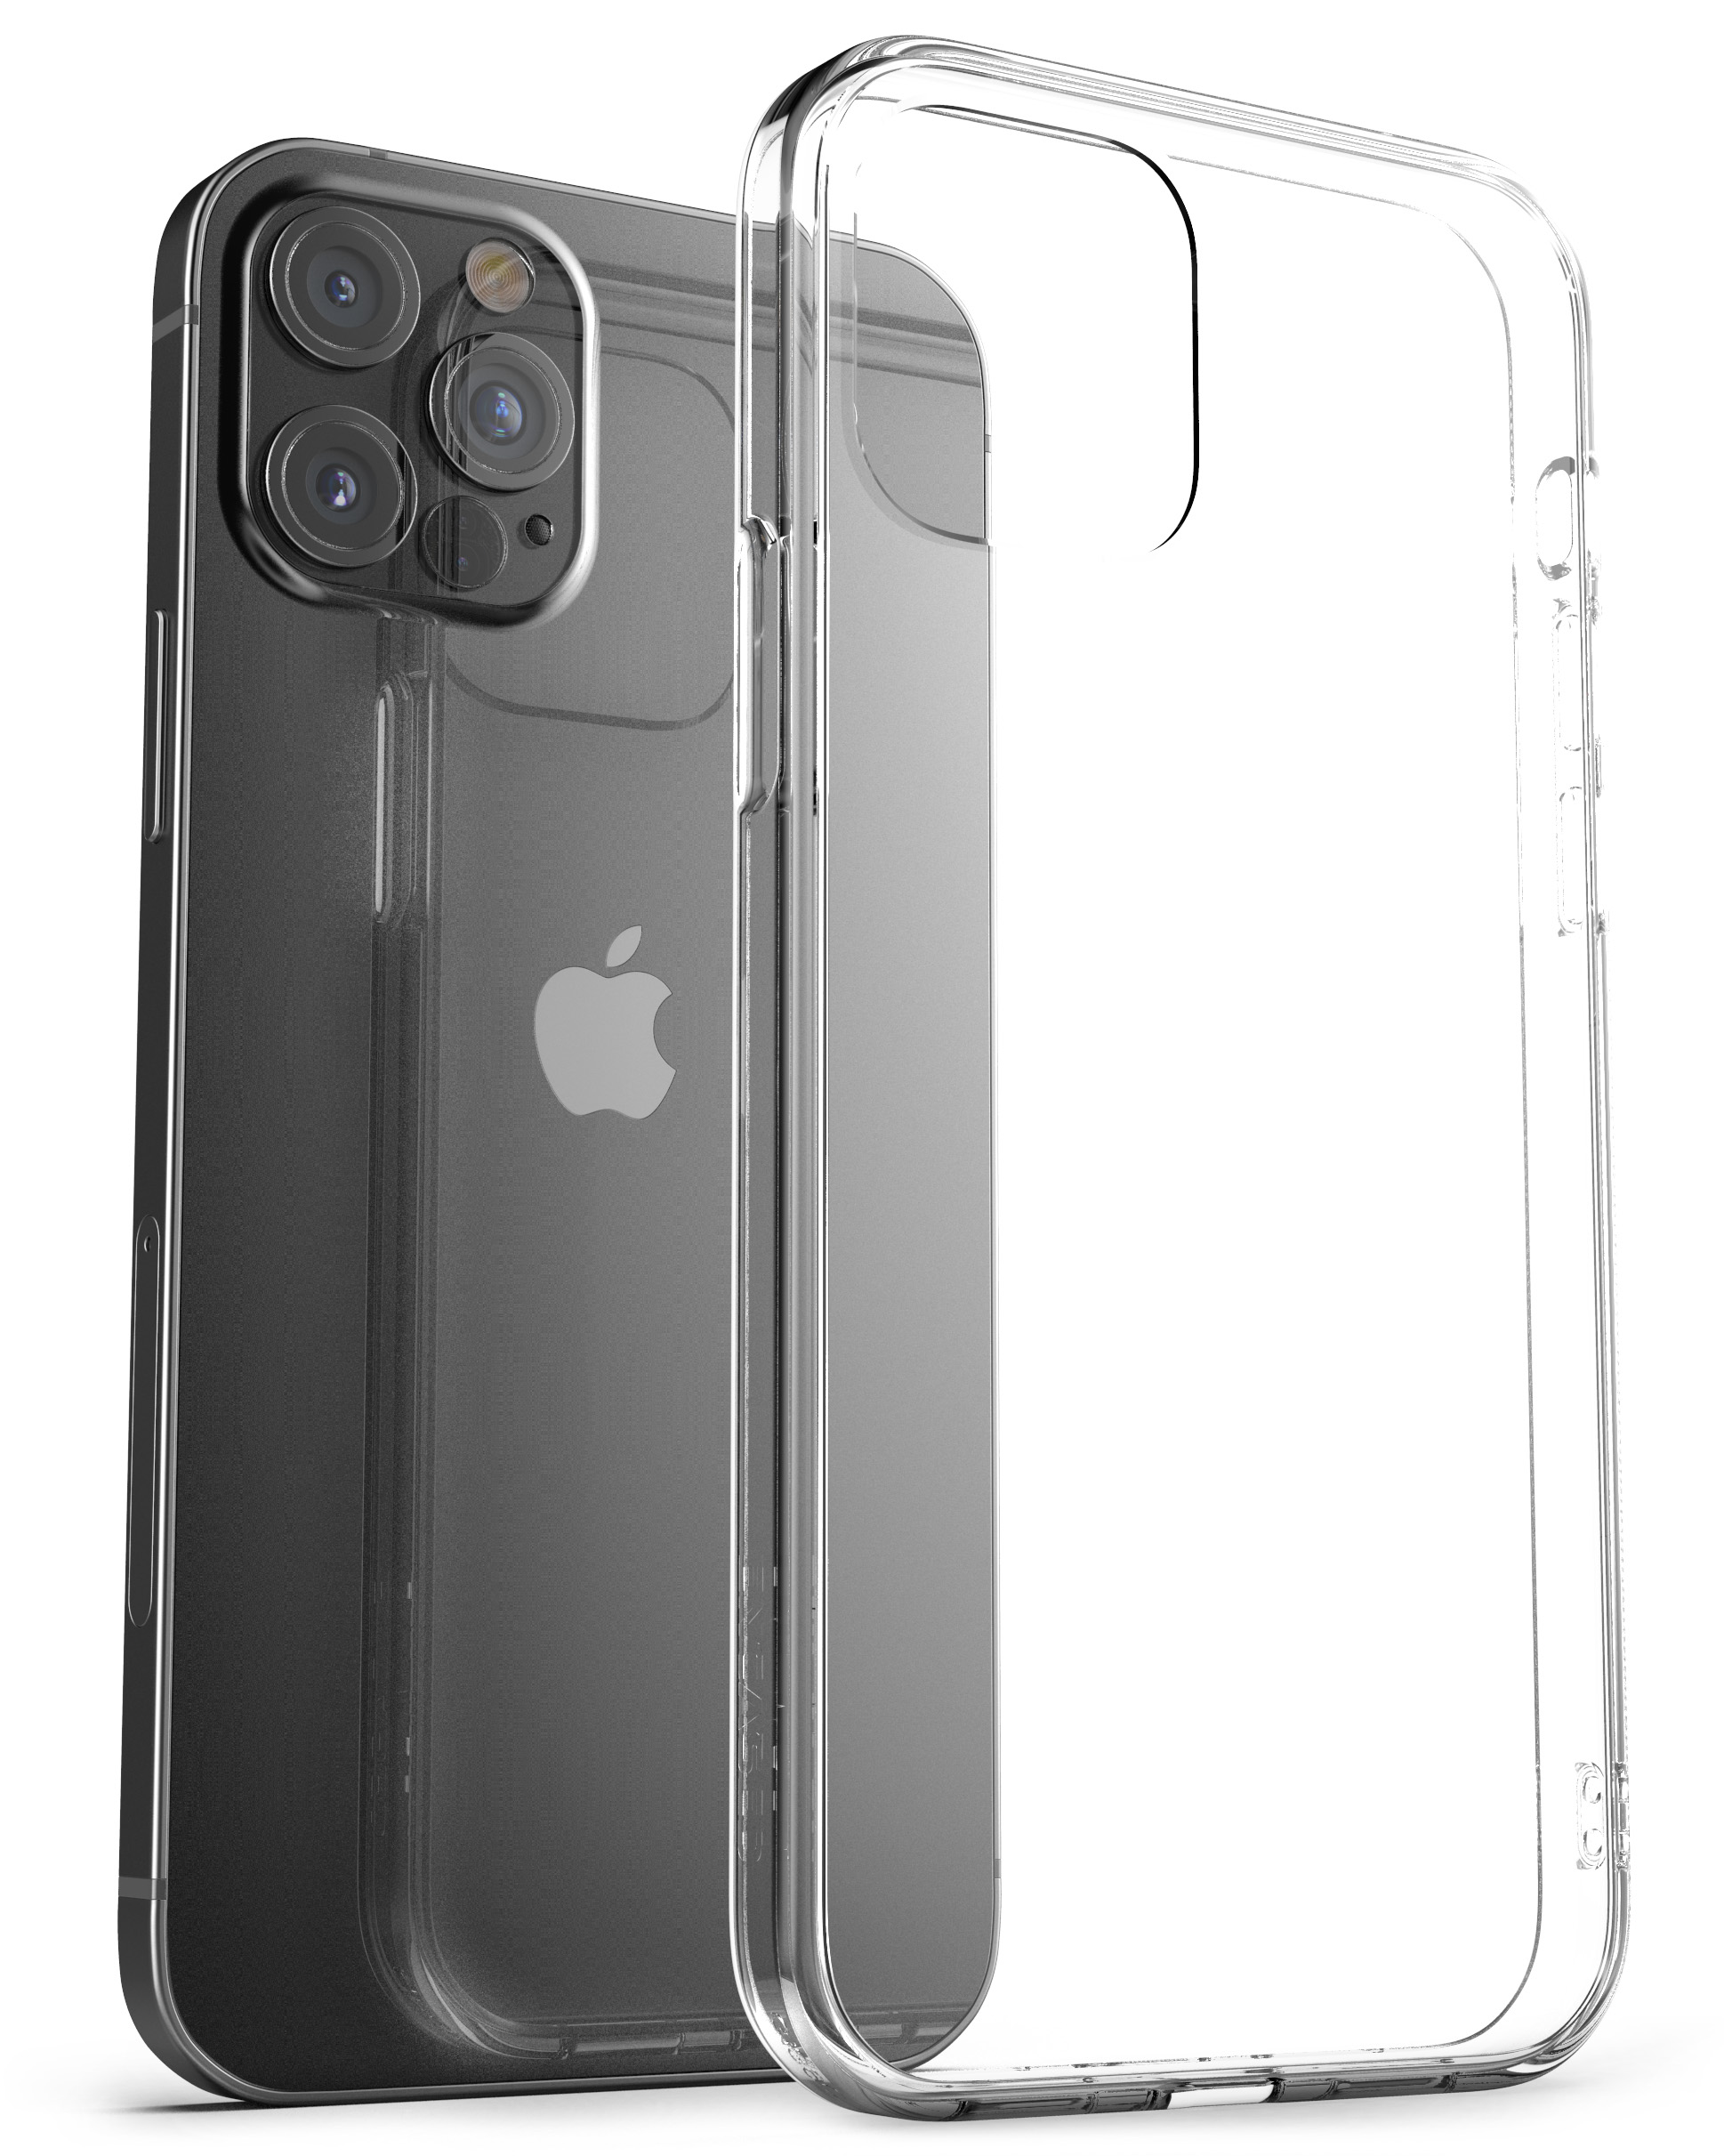 iPhone 12 Pro Max Clear back Case And Holster Clear - Encased